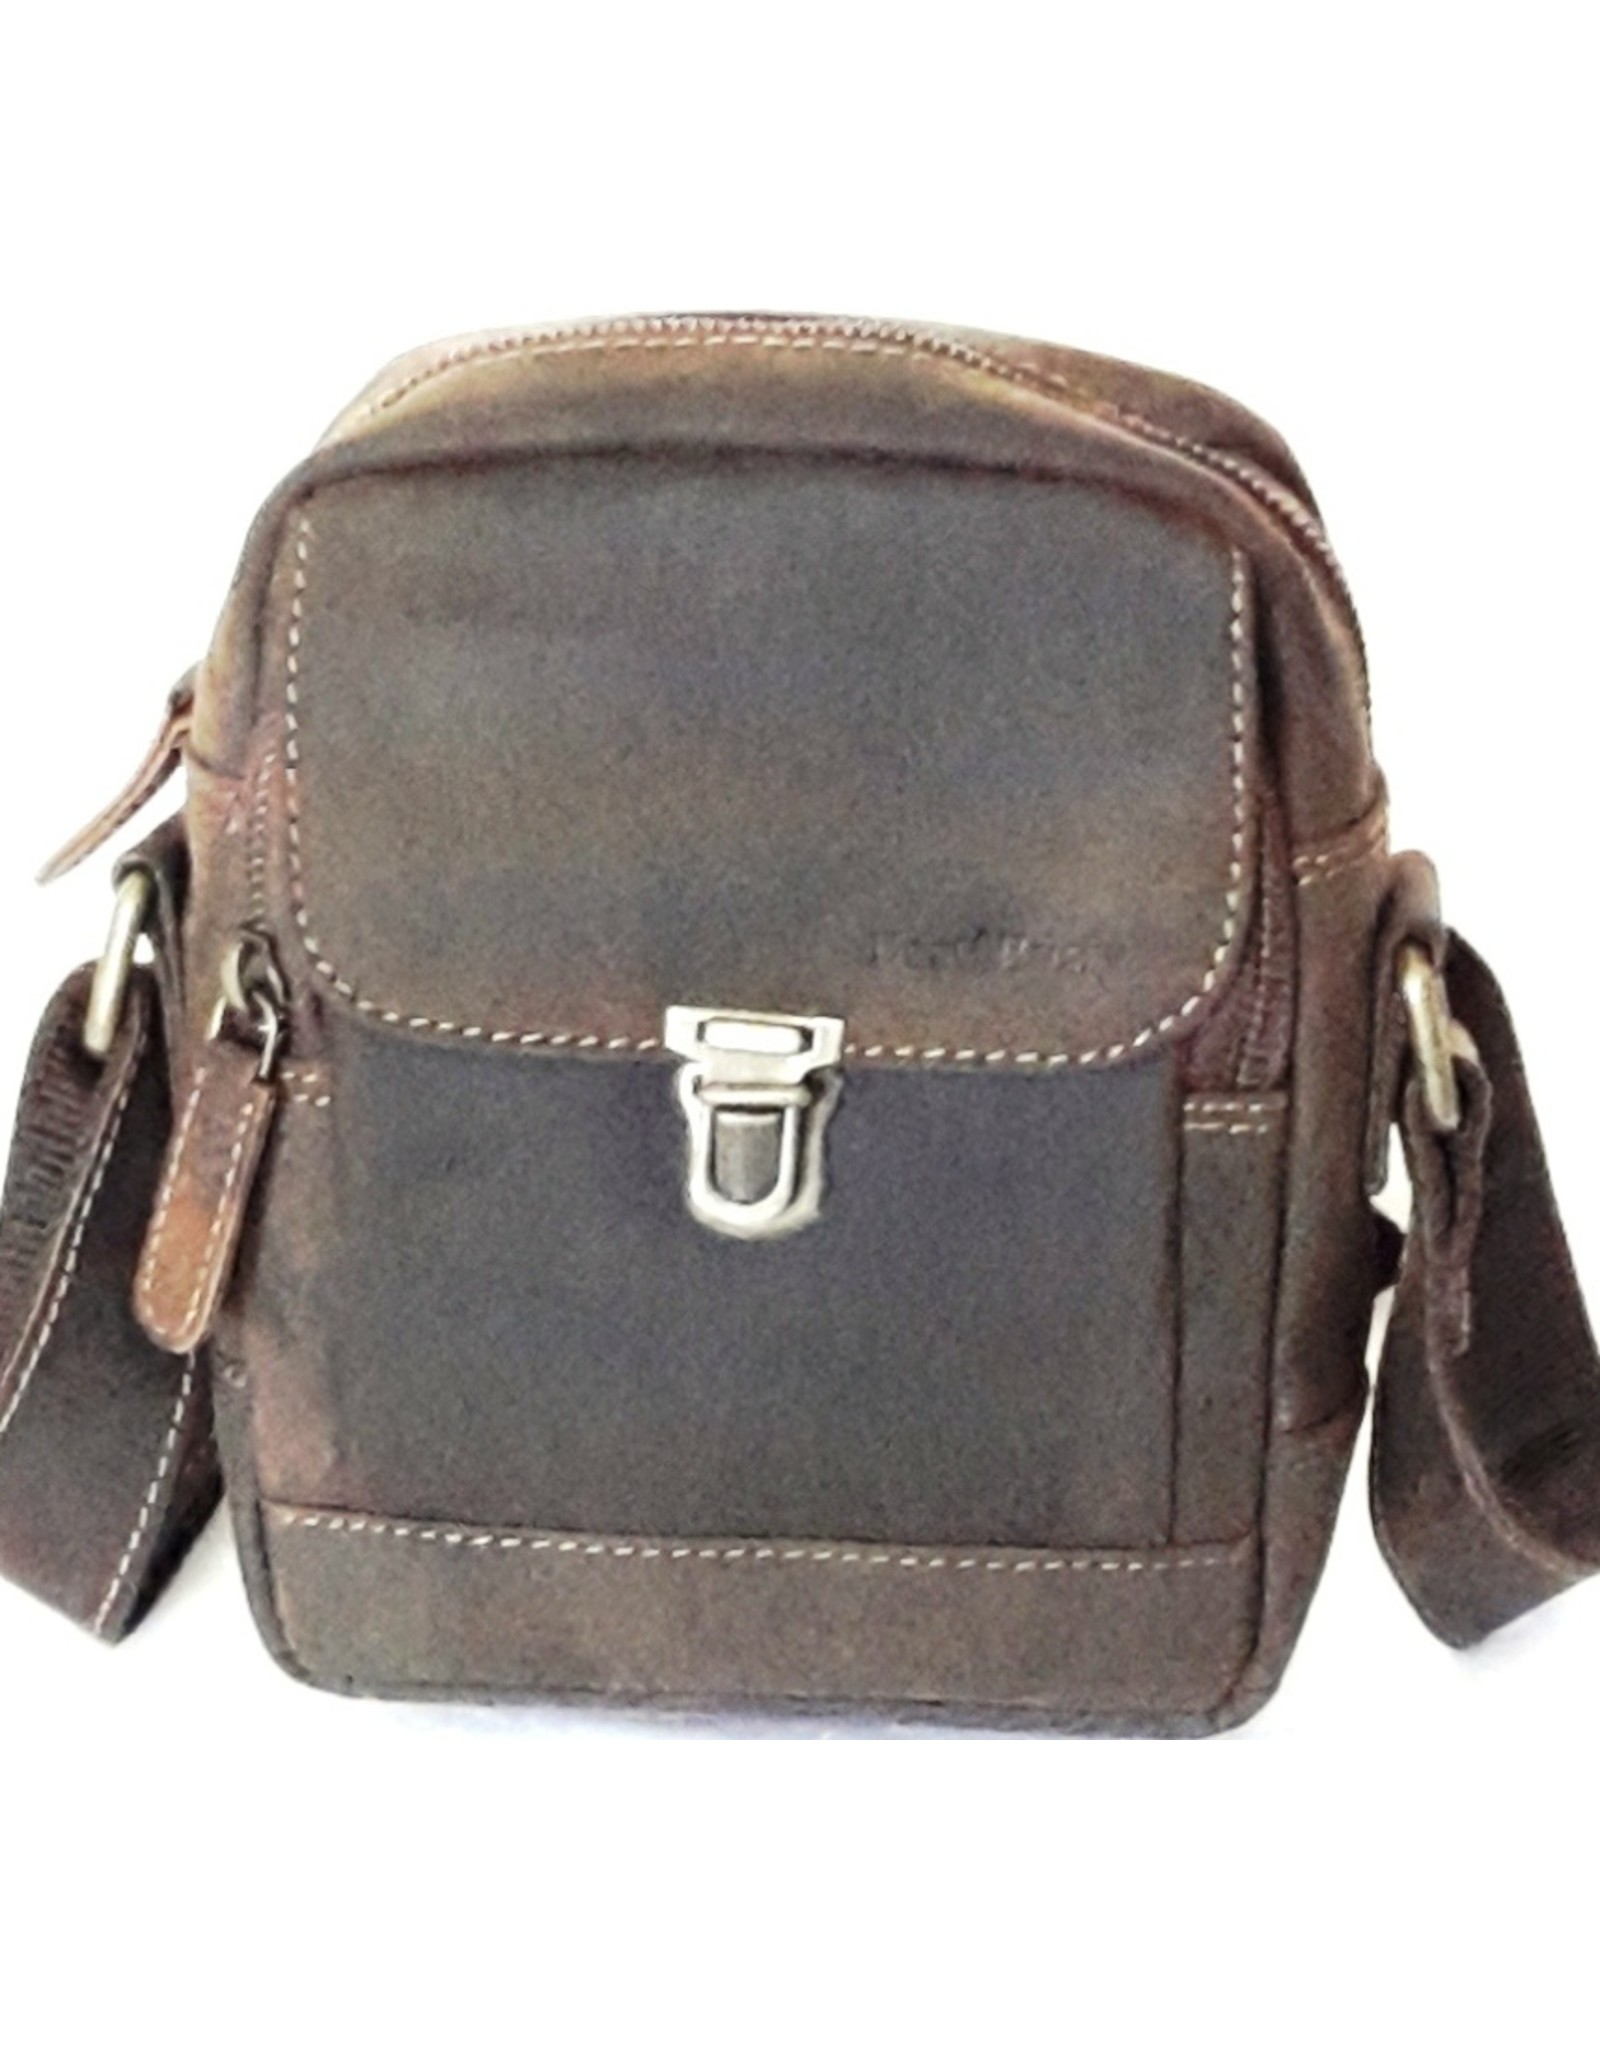 Napa Valley Leather shoulder bags Leather crossbody bags - Leather crossbody small bag with  sliding clasp Best Burry